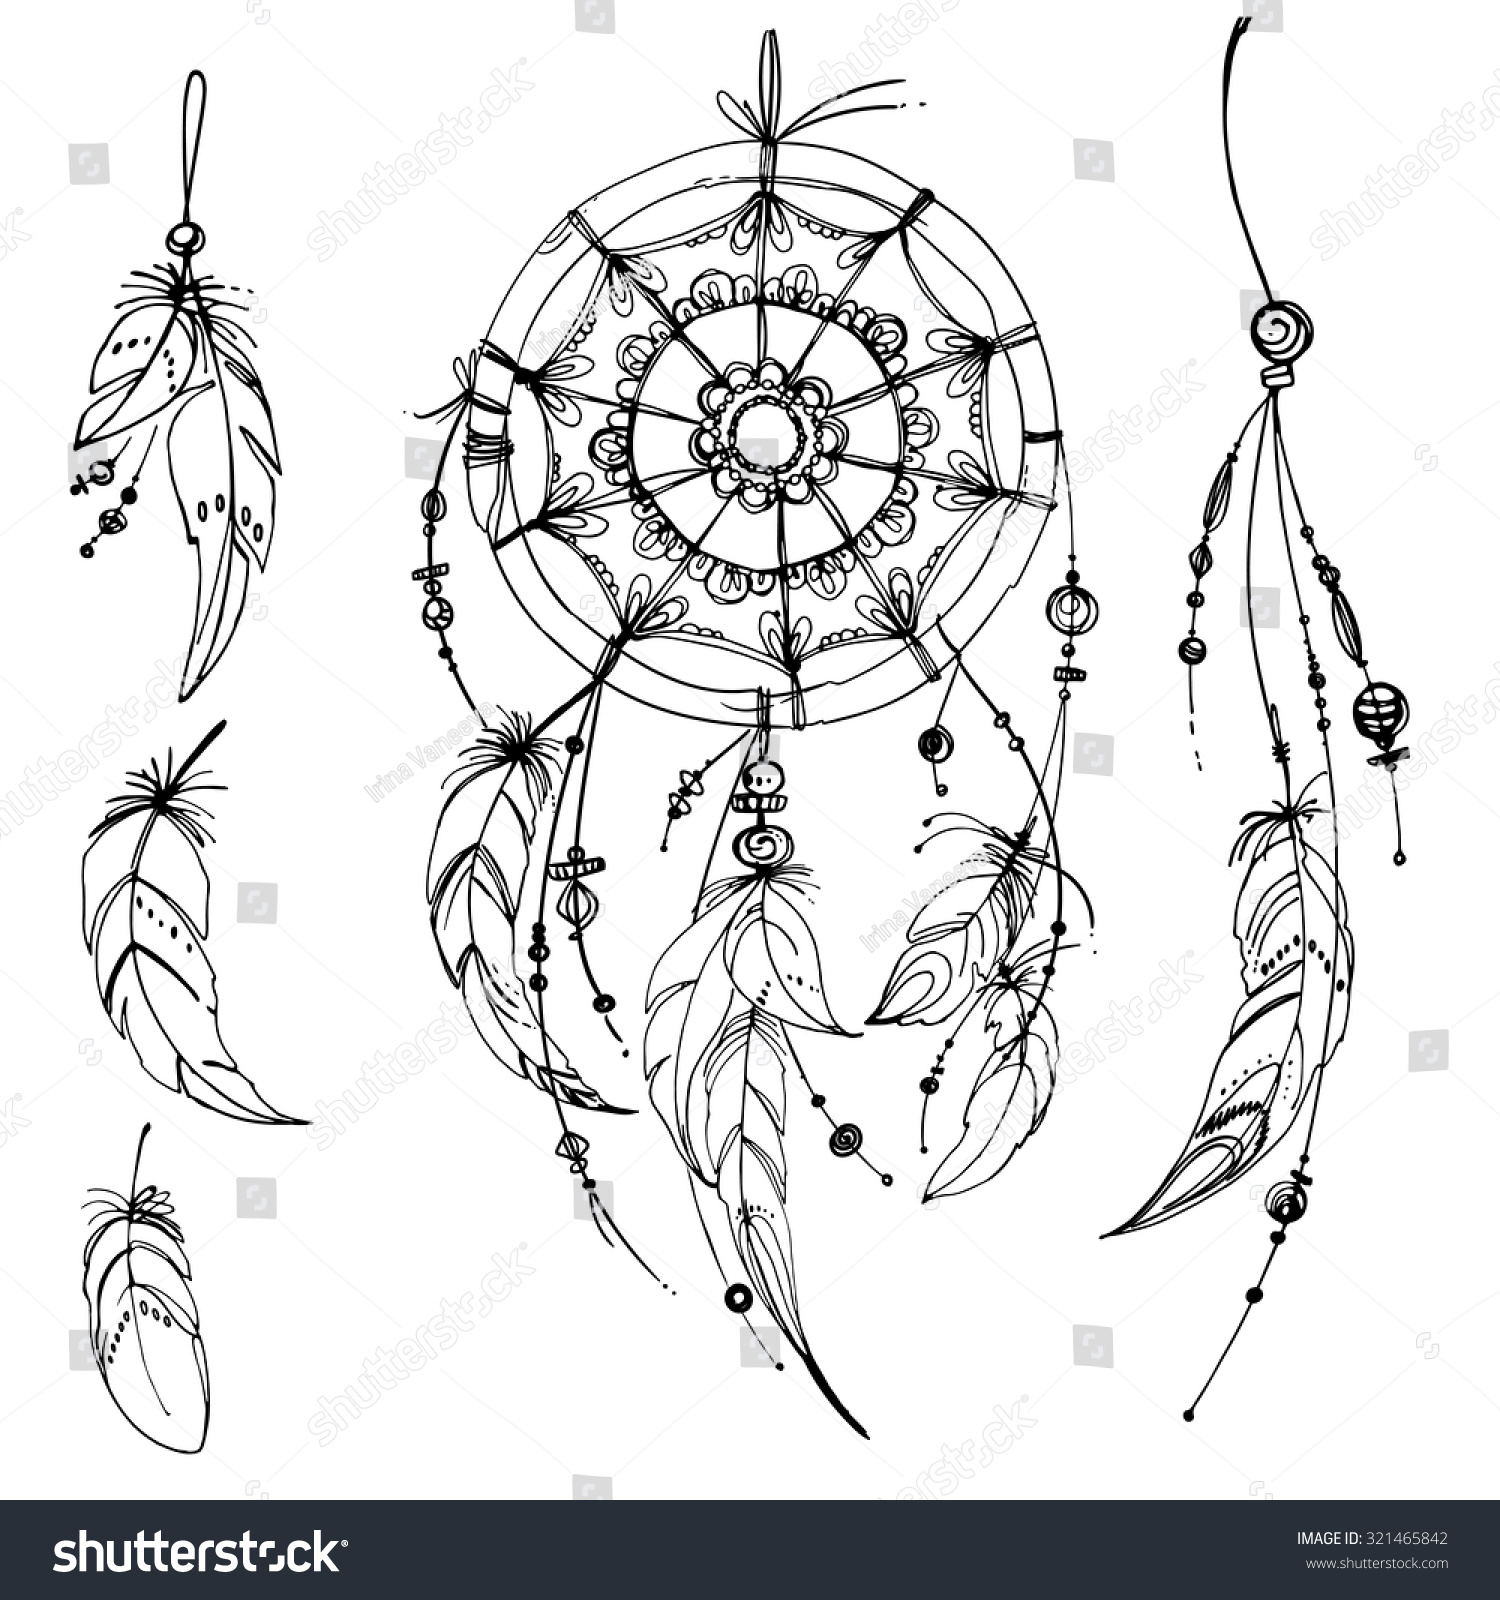 Native american ornaments - Set Of Ornaments Feathers And Beads Native American Indian Dream Catcher Traditional Symbol